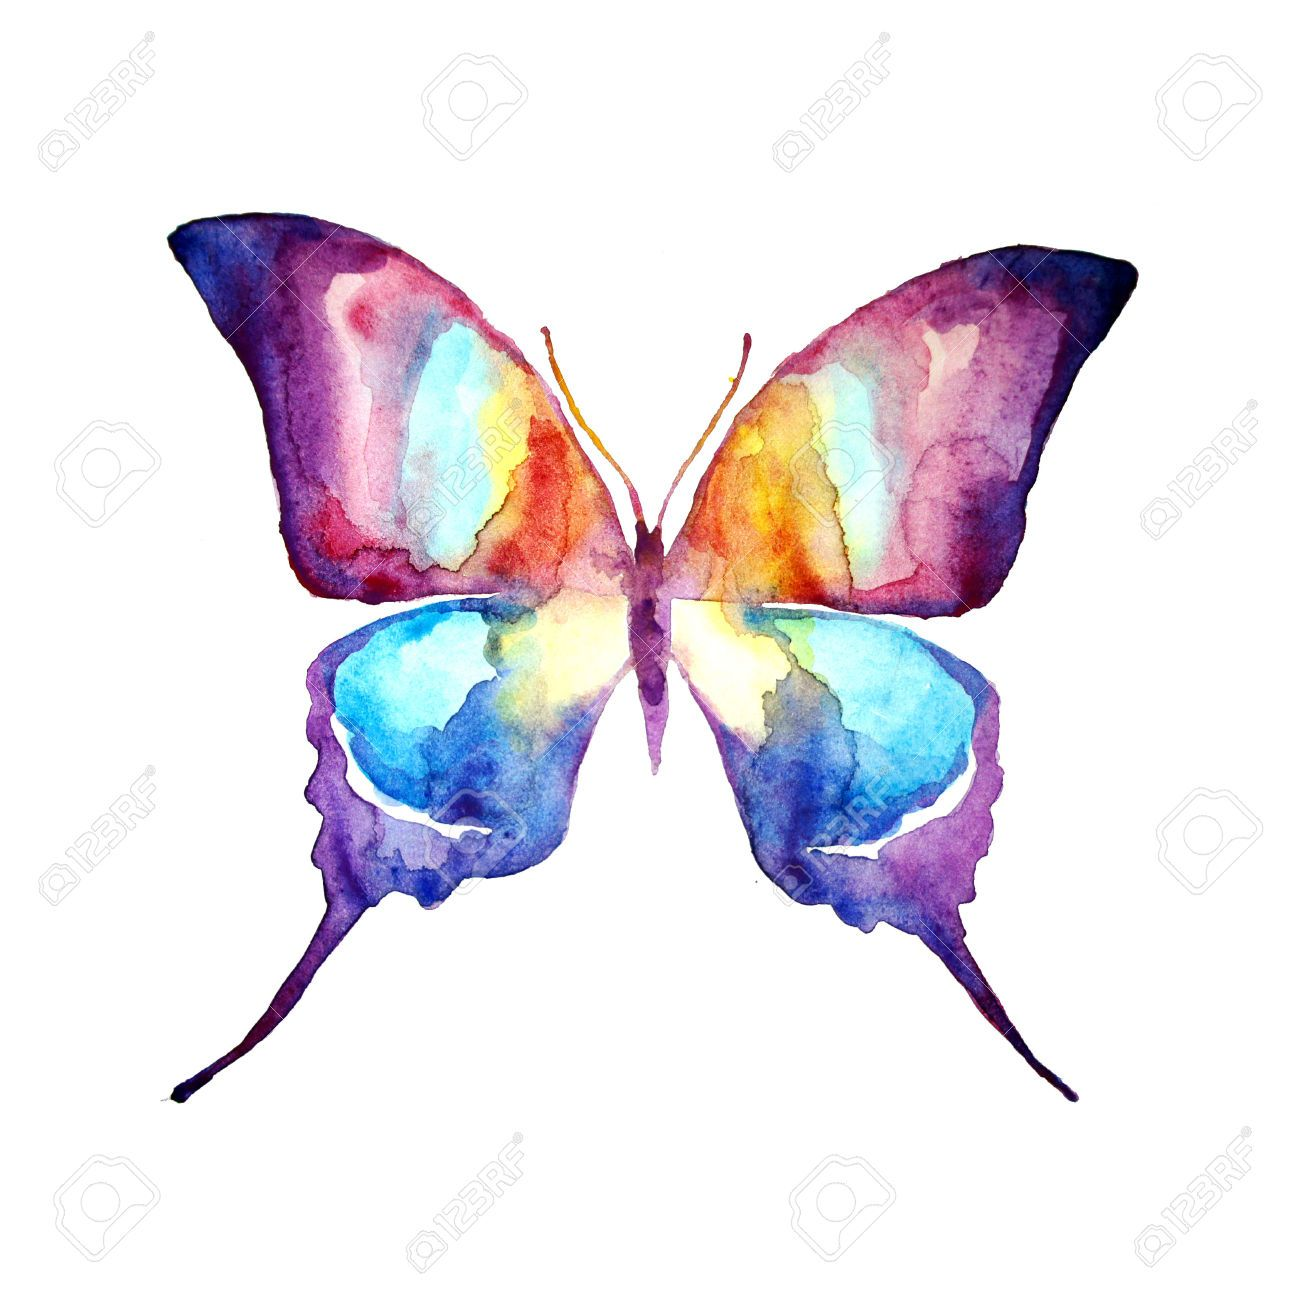 Butterfly watercolor design stock photo picture and for Watercolor painting images